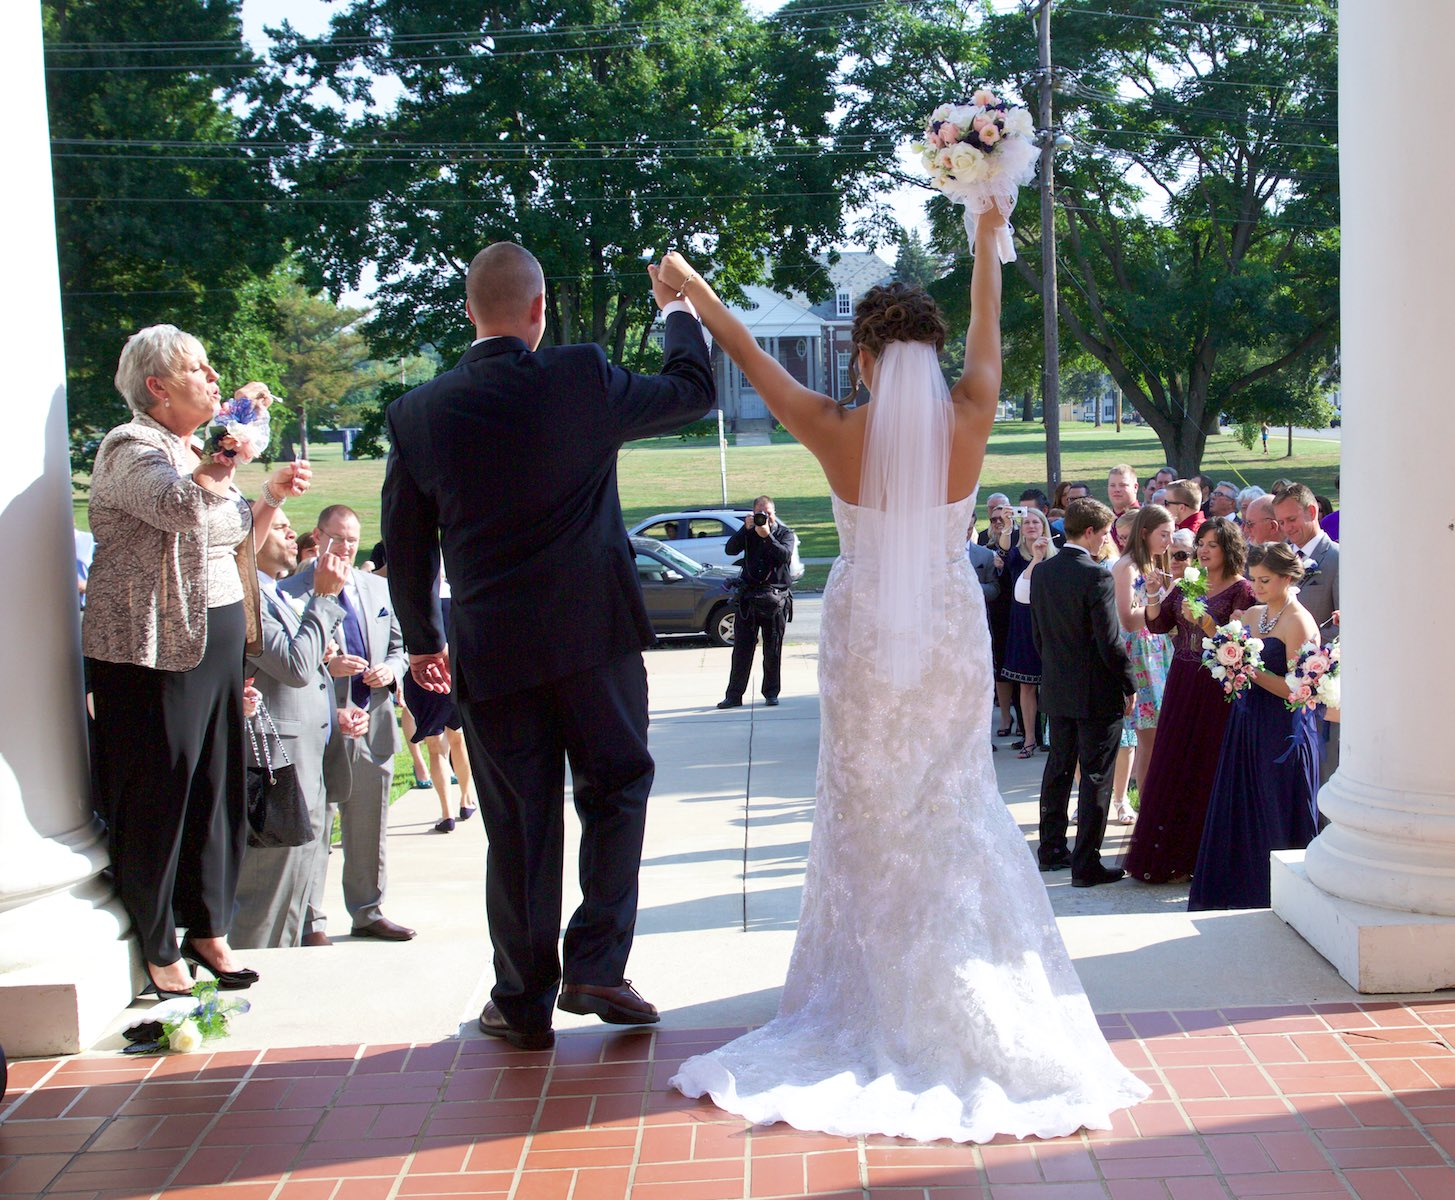 Adria and Jeremy greeted by bubbles, Annie Merner Chapel, MacMurray College, Jacksonville, Illinois. Wedding photography by Steve & Tiffany Warmowski.